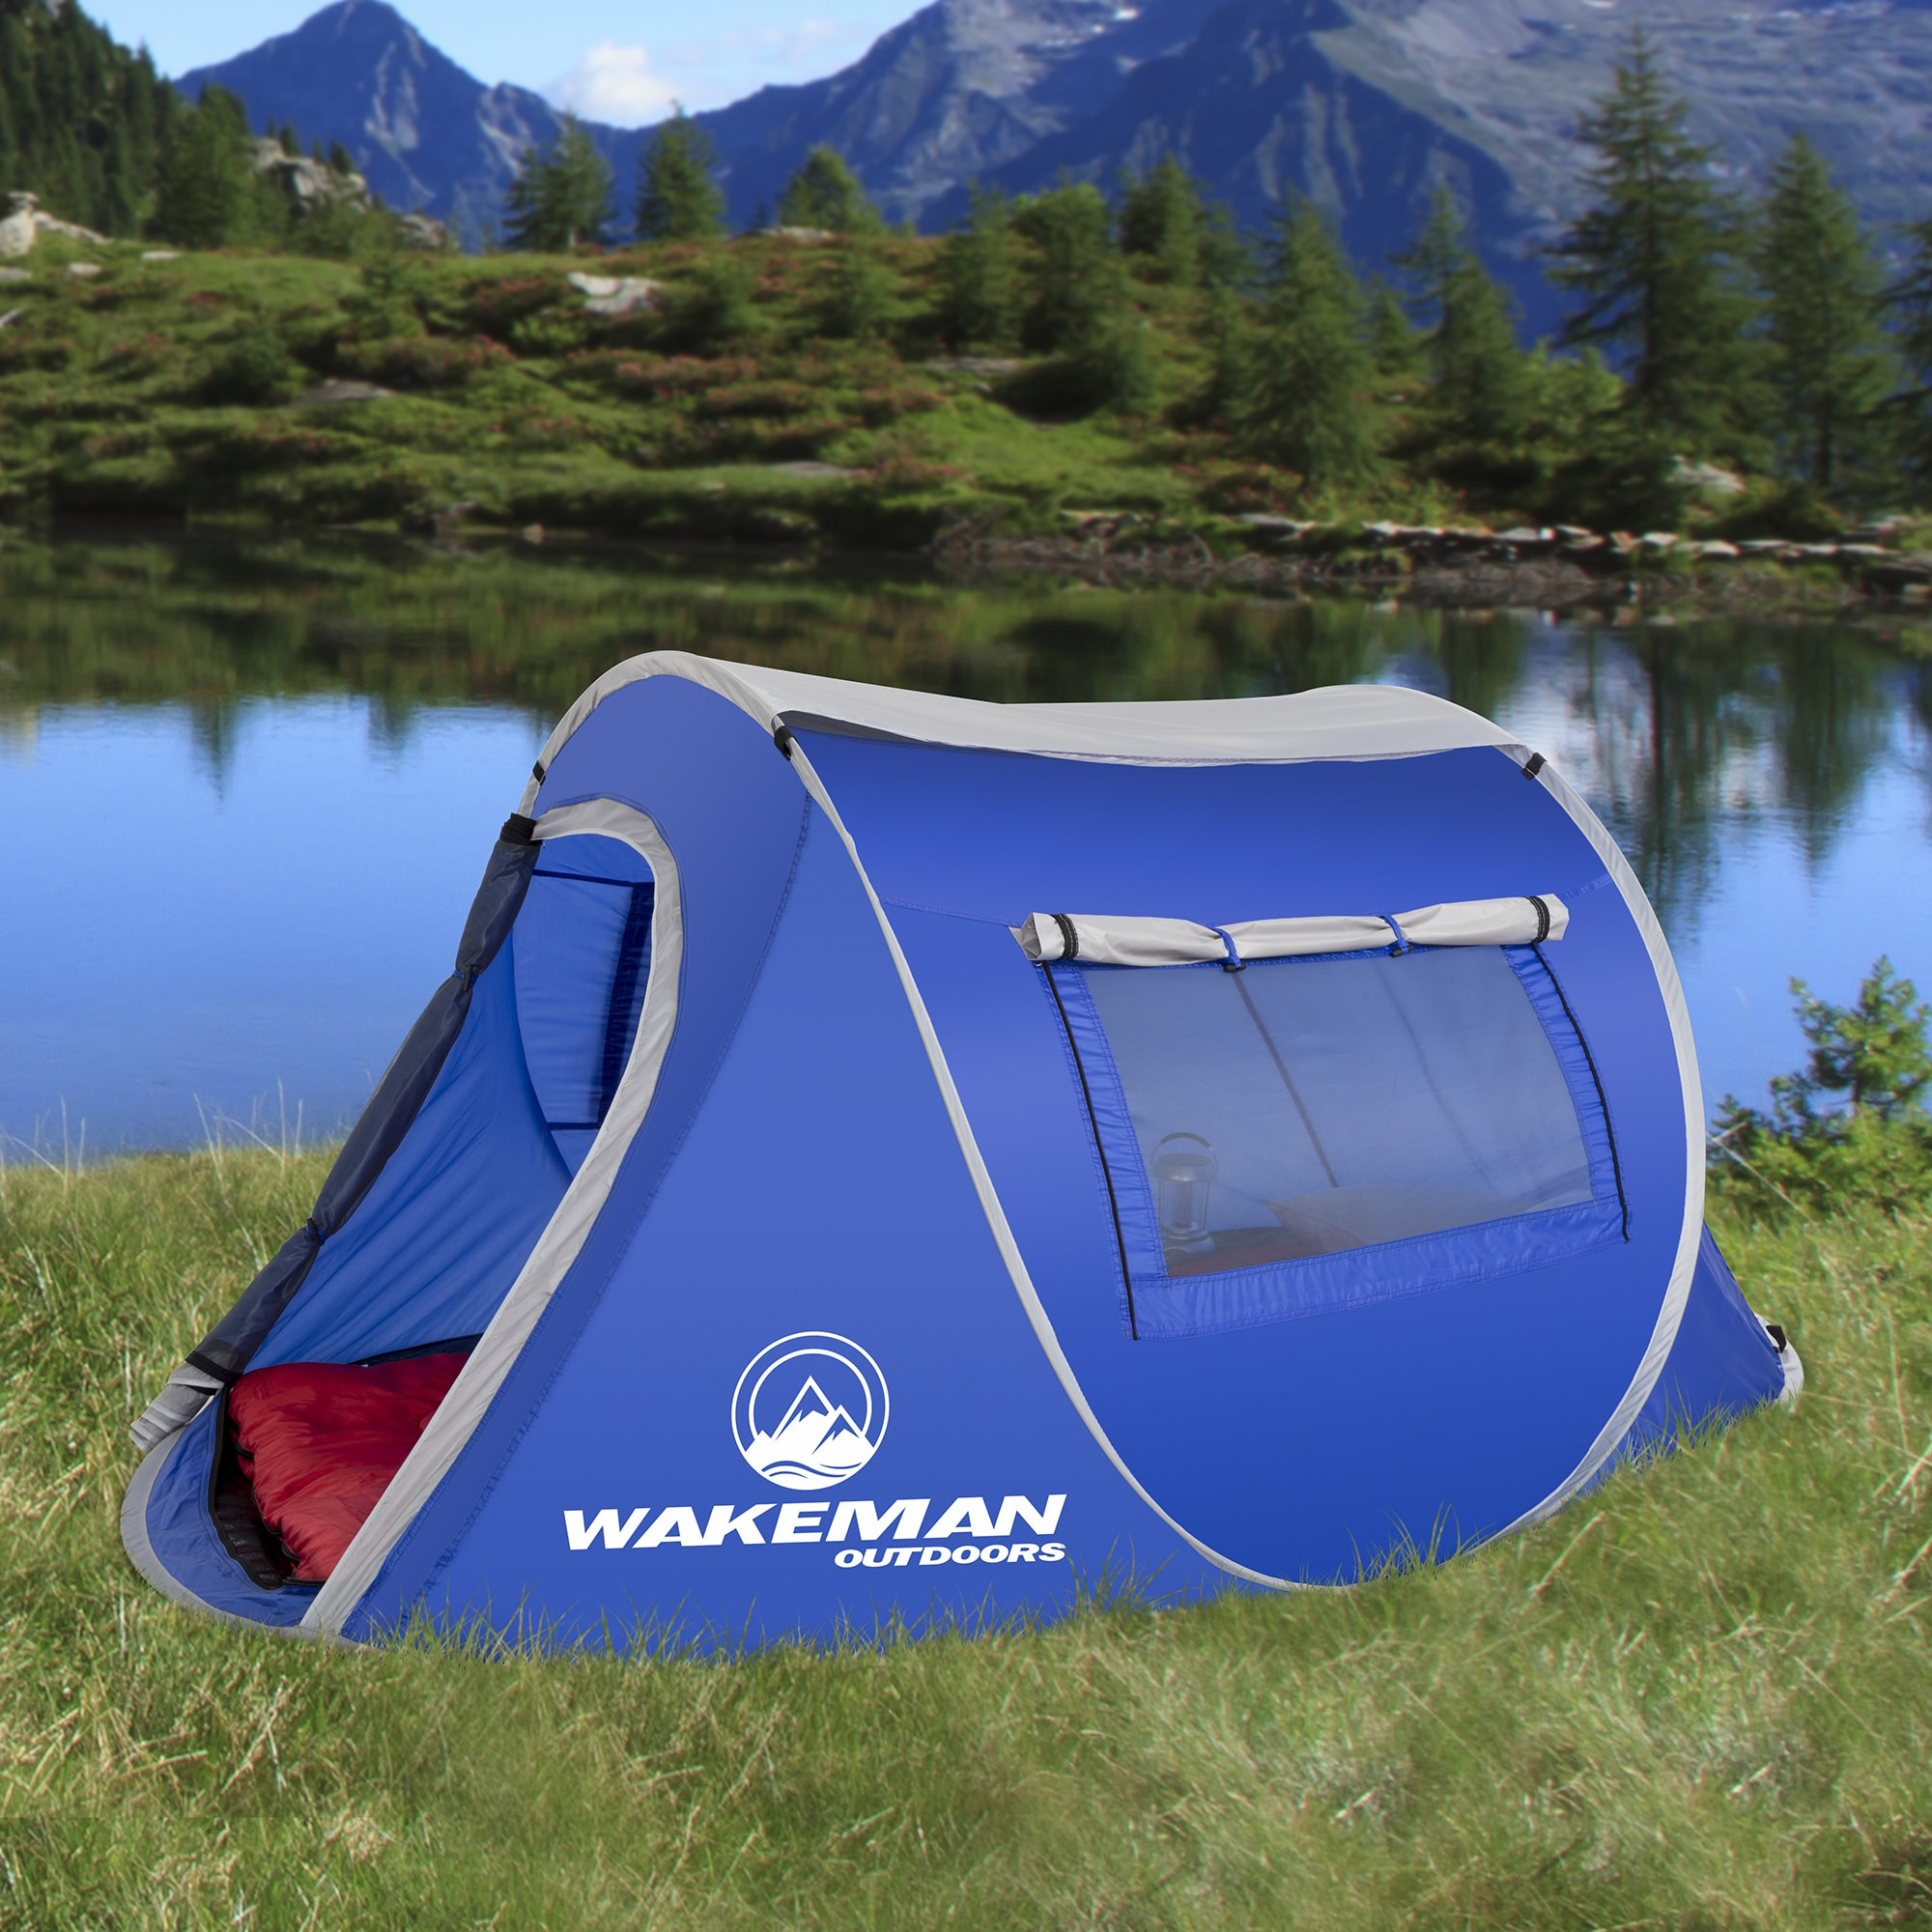 36 Best 2 Person Pop Up Tent Images On & Mil Spec Two Person Pop Up Tent - Best Tent 2018